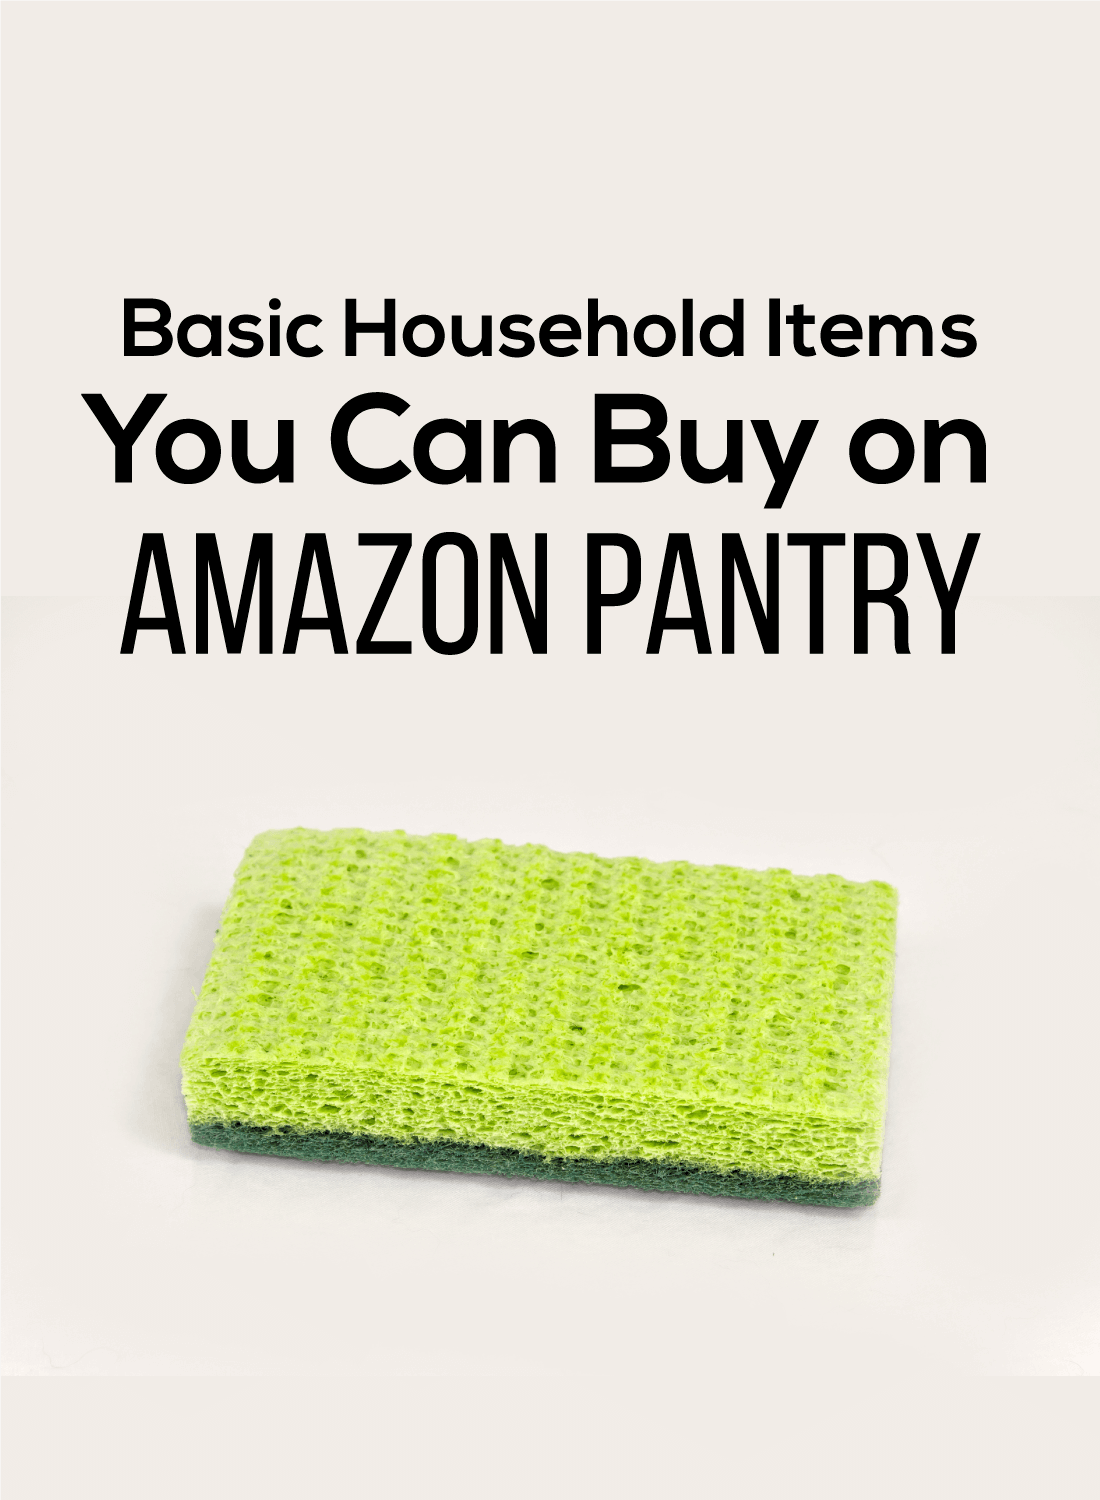 Basic Household Items You Can Buy on Amazon Pantry